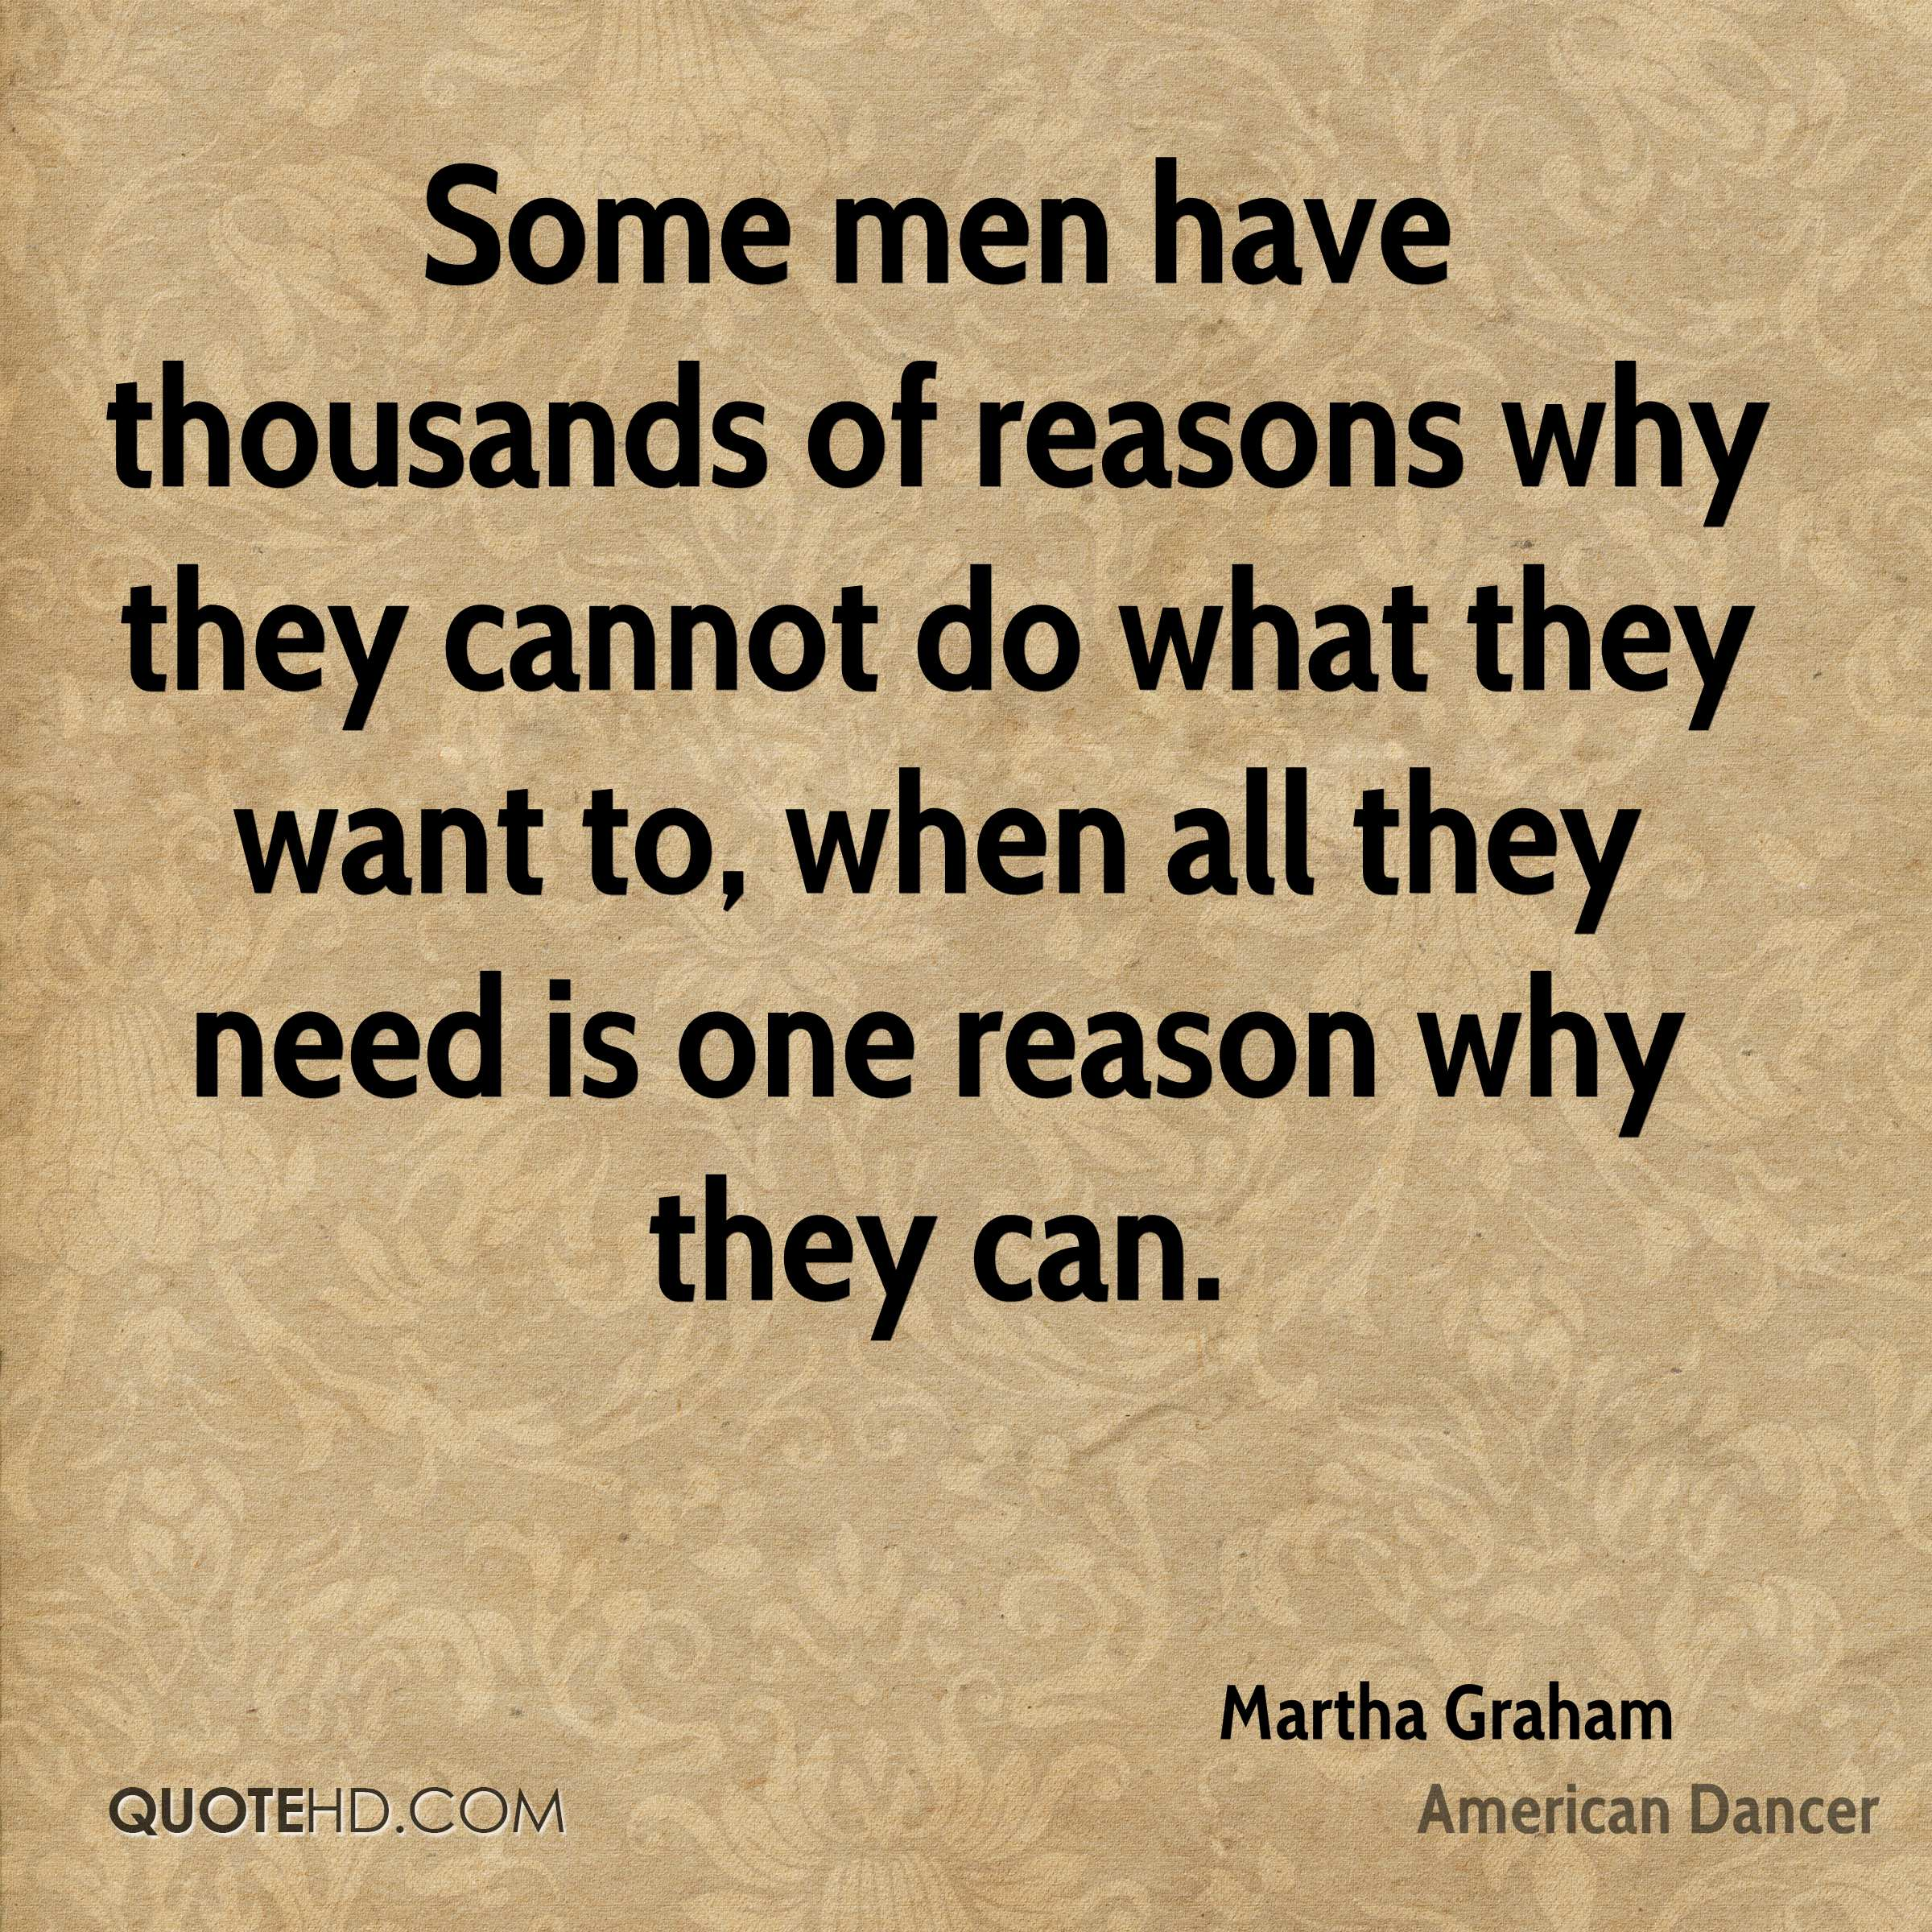 Some men have thousands of reasons why they cannot do what they want to, when all they need is one reason why they can.